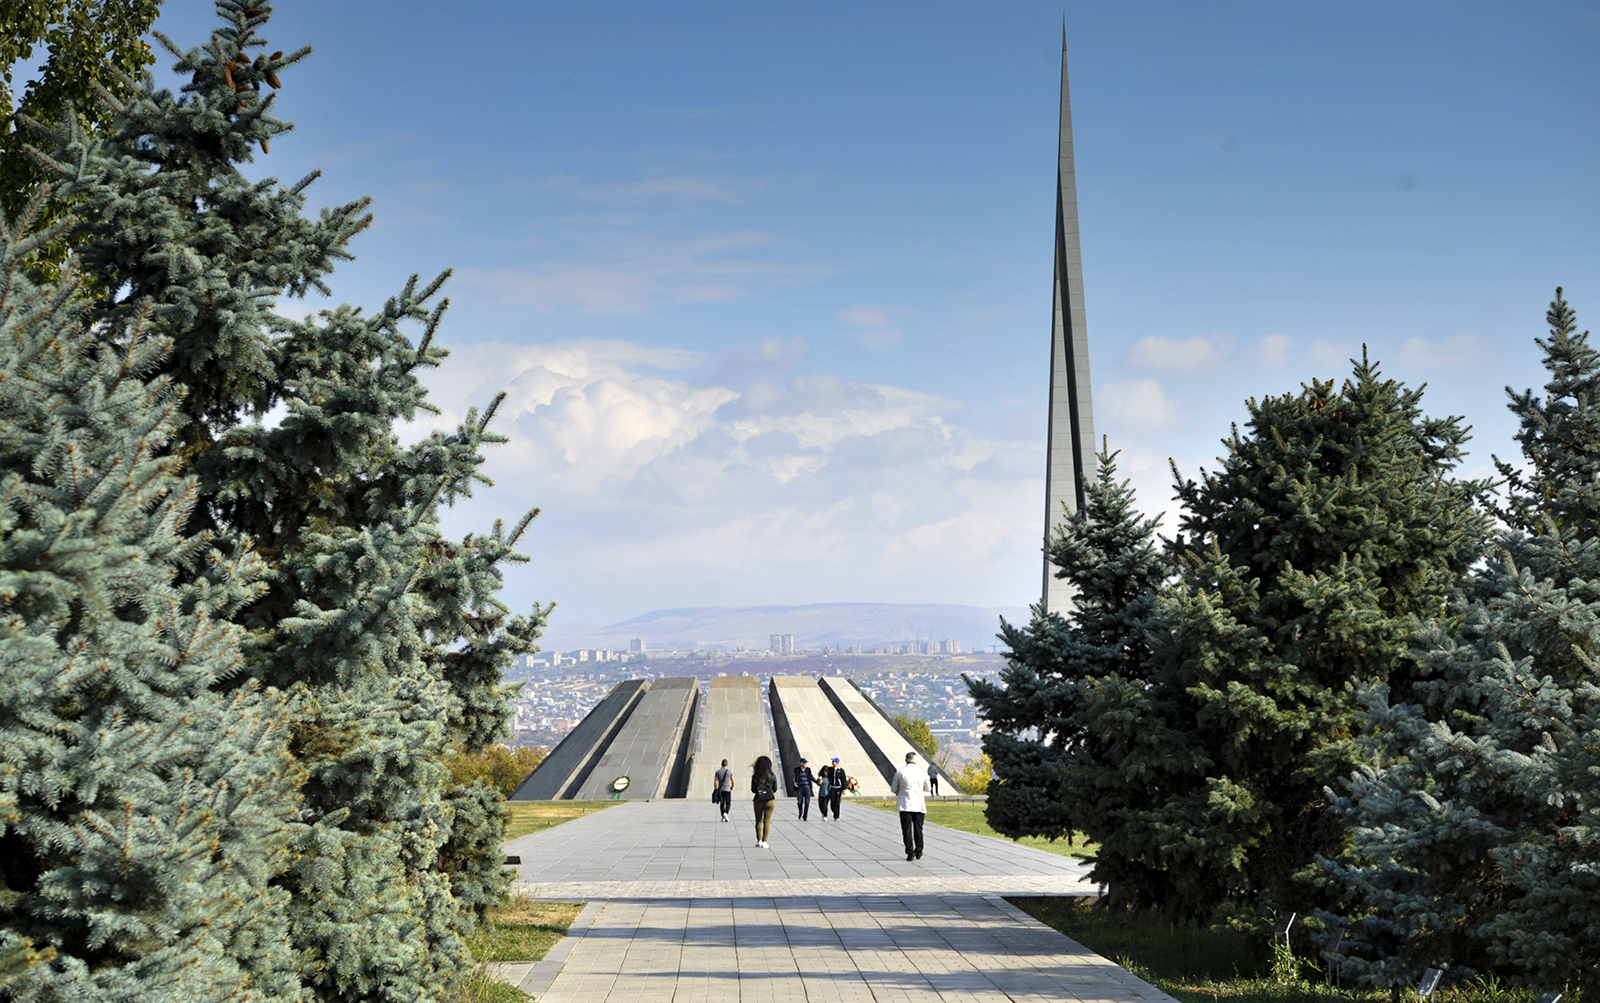 A view of the Tsitsernakaberd Armenian Genocide Memorial Complex, a memorial to the victims of mass killings by Ottoman Turks during World War I, in the Armenian capital Yerevan, Armenia, Oct. 30, 2019. (AP Photo/Hakob Berberyan)